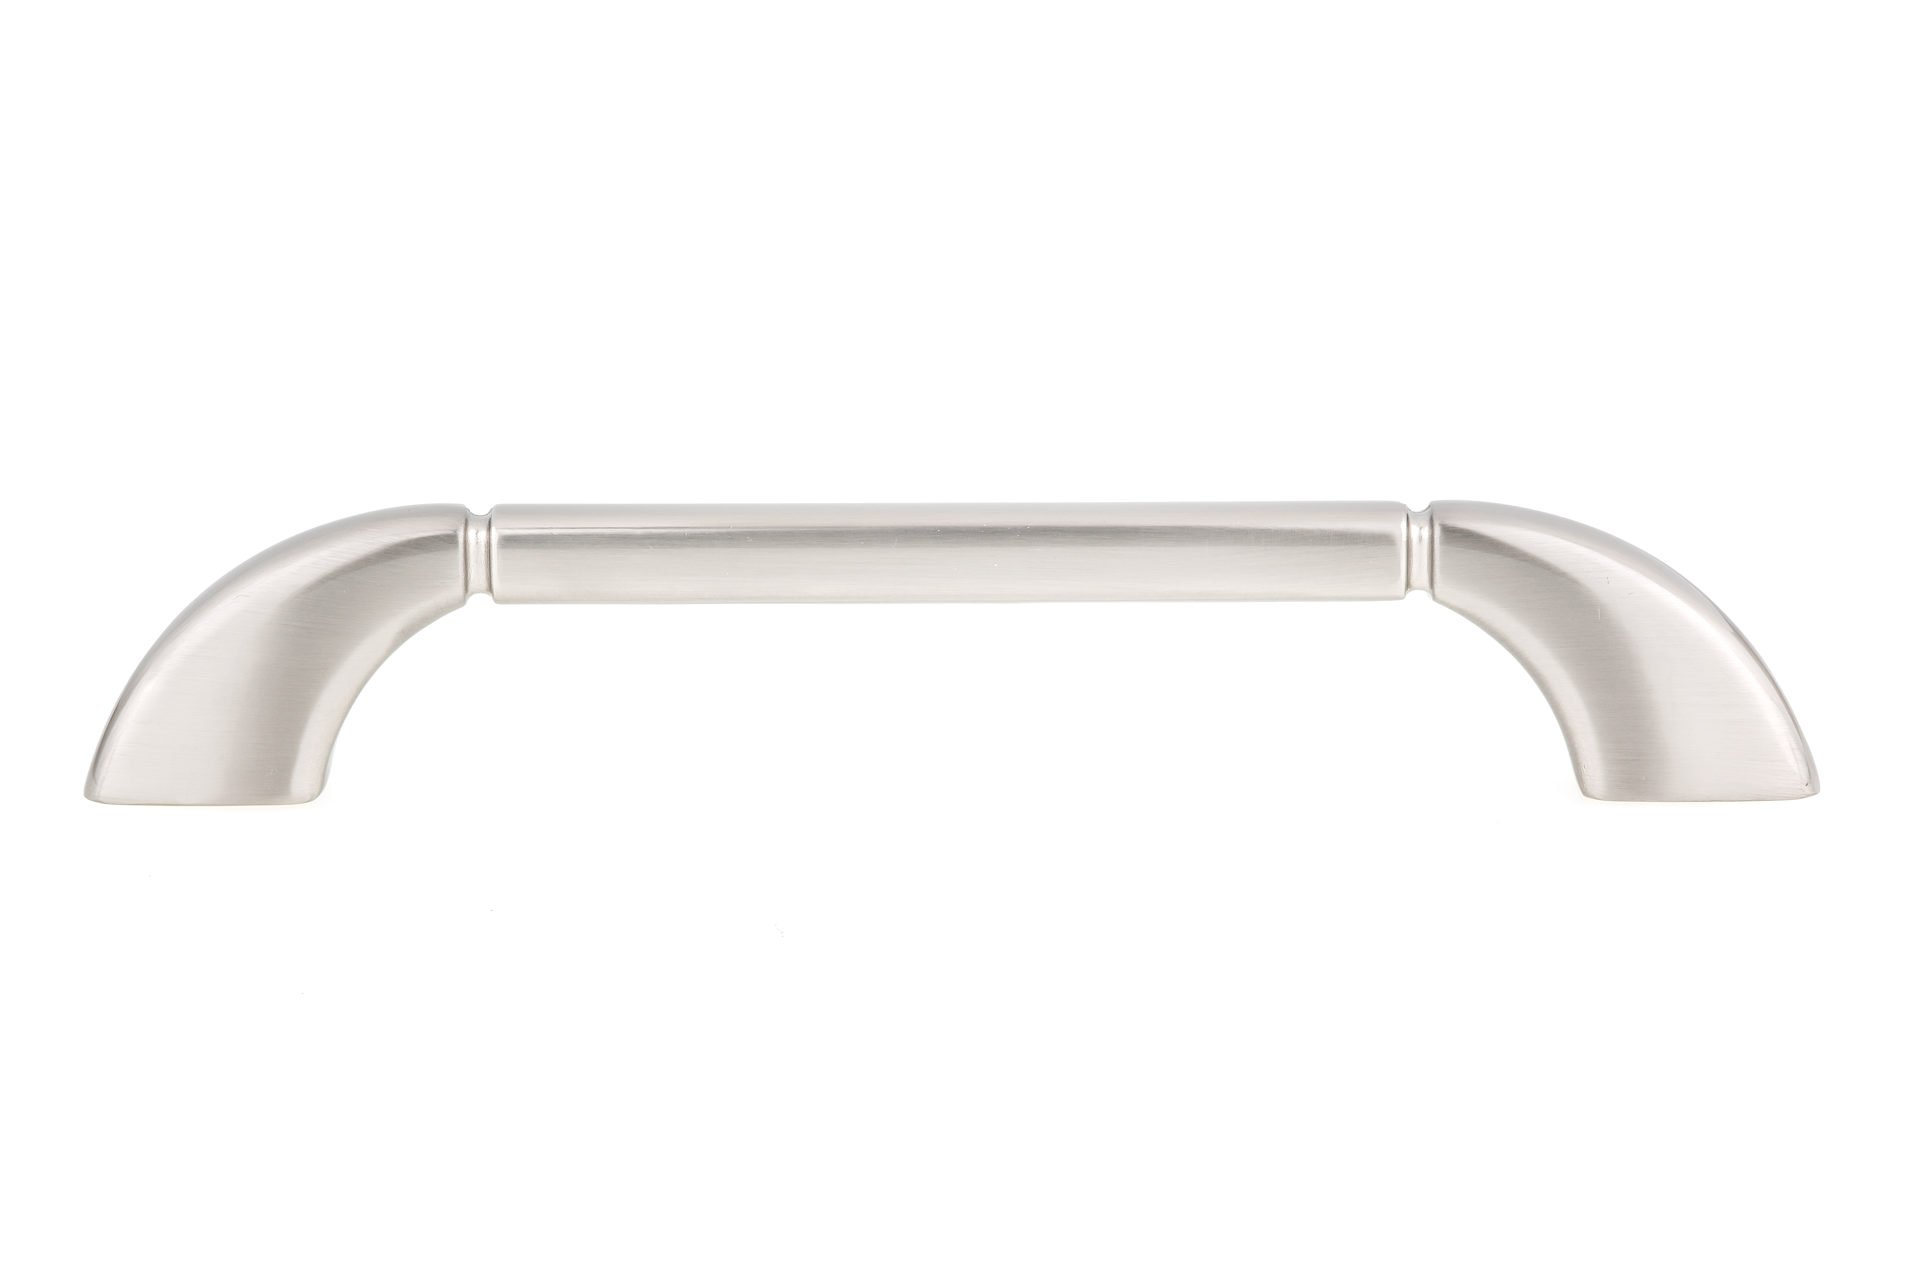 Richelieu-Hardware–bp8282160195–Modernes-Metall-Pull–82826-516-In-160-mm–Brushed-Nickel-Finish